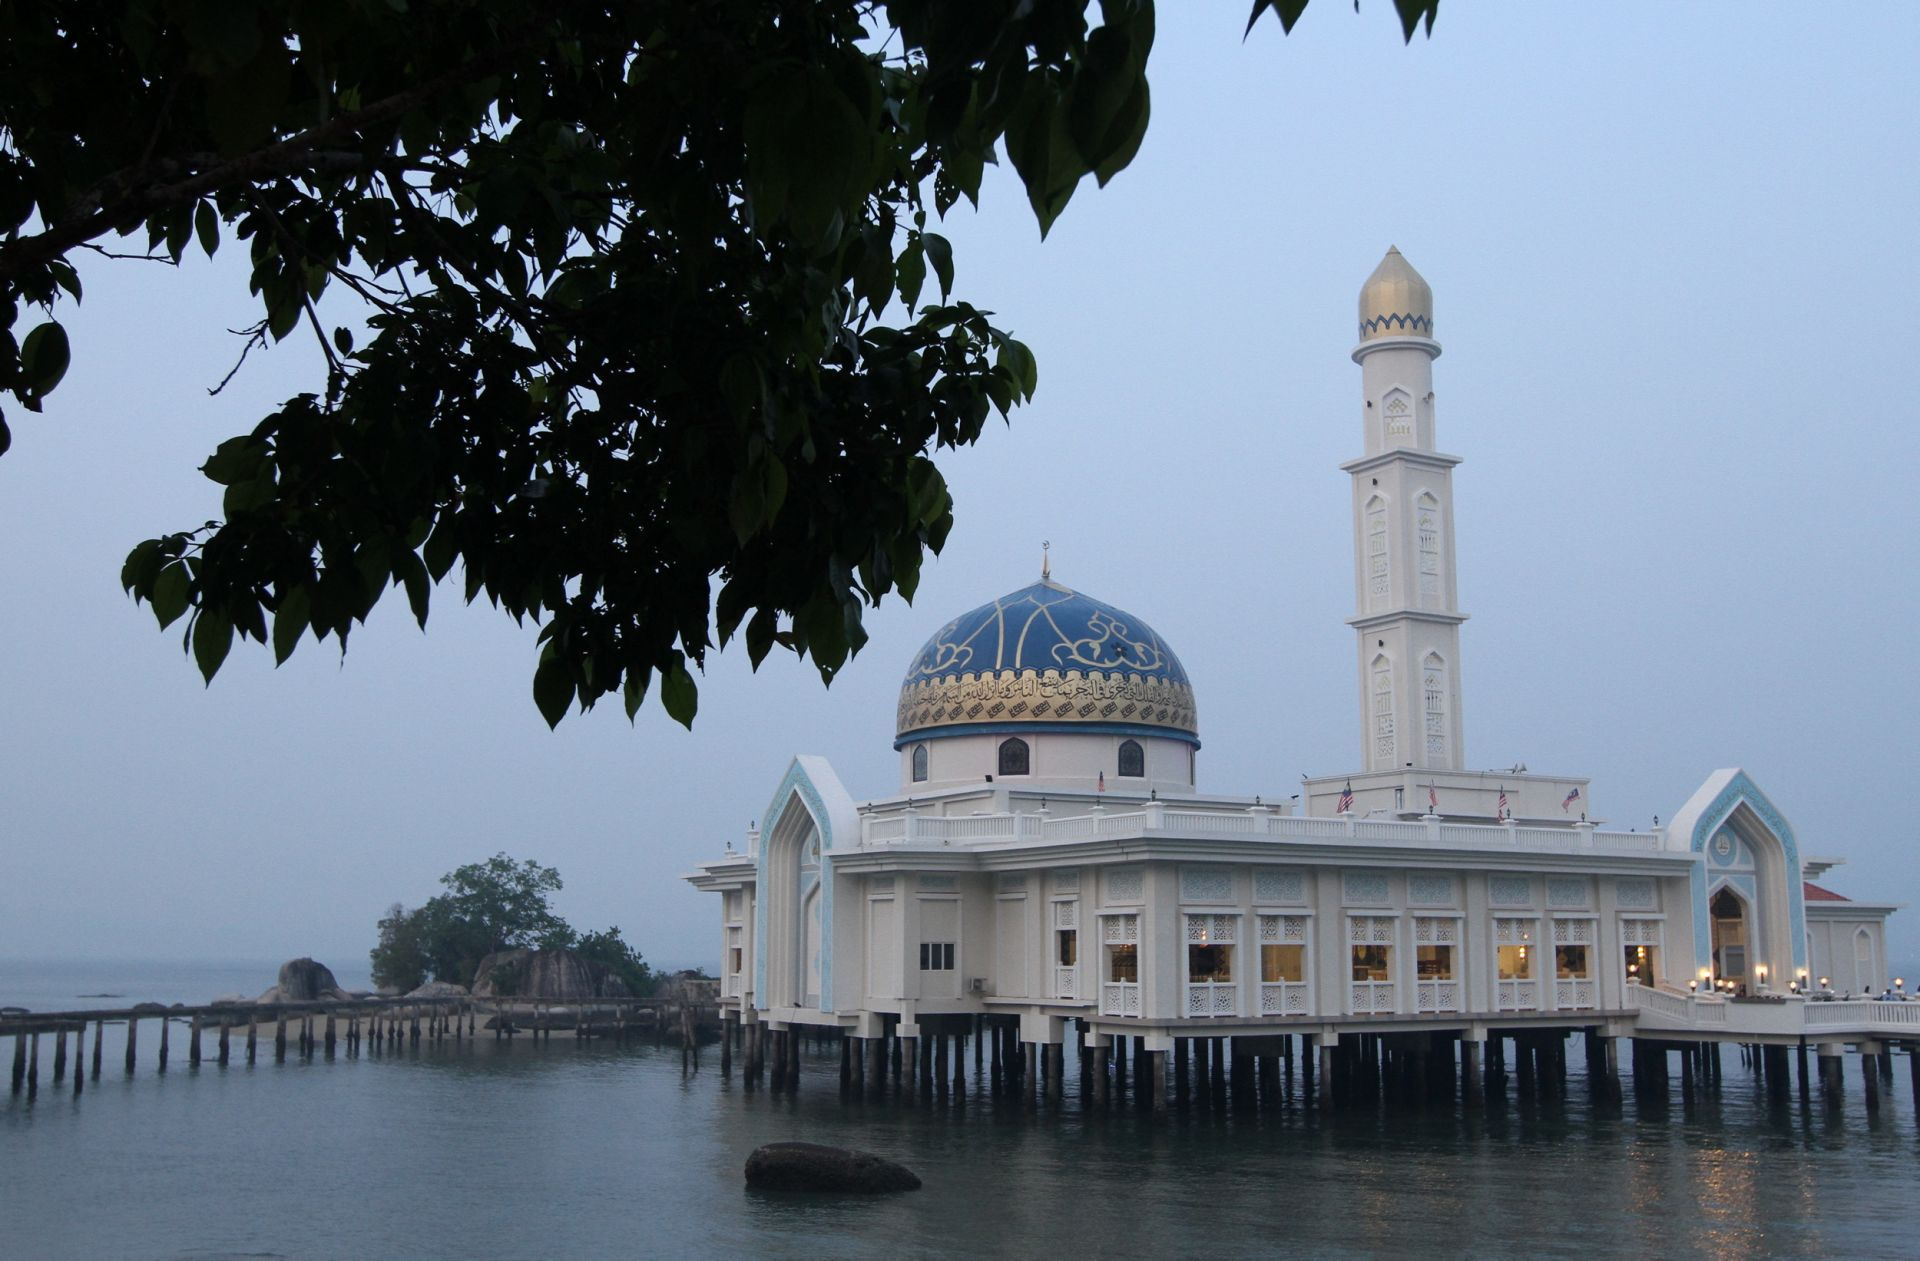 Majestic beauty: The Masjid Al-Badr Seribu Selawat, Perak's very own floating mosque, is a special highlight of Pangkor.